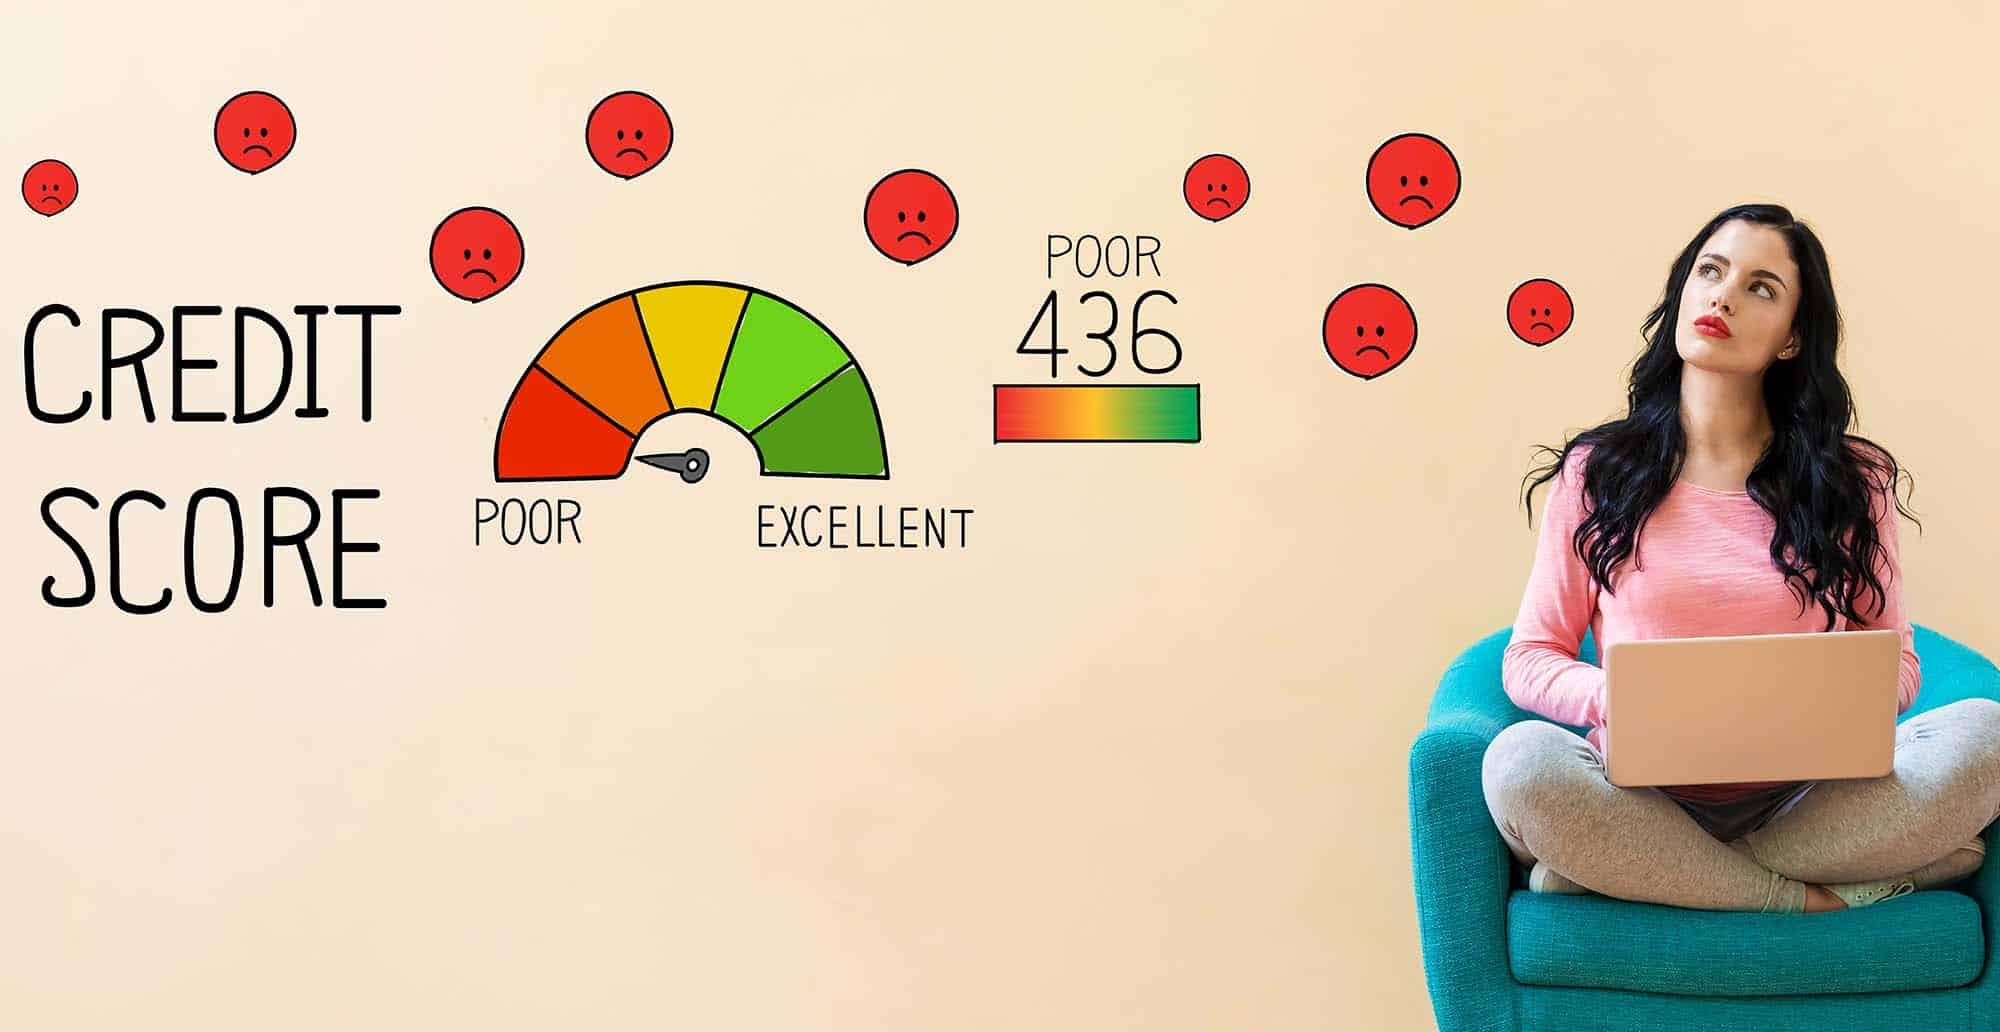 A woman contemplates how to achieve good credit from a bad credit score